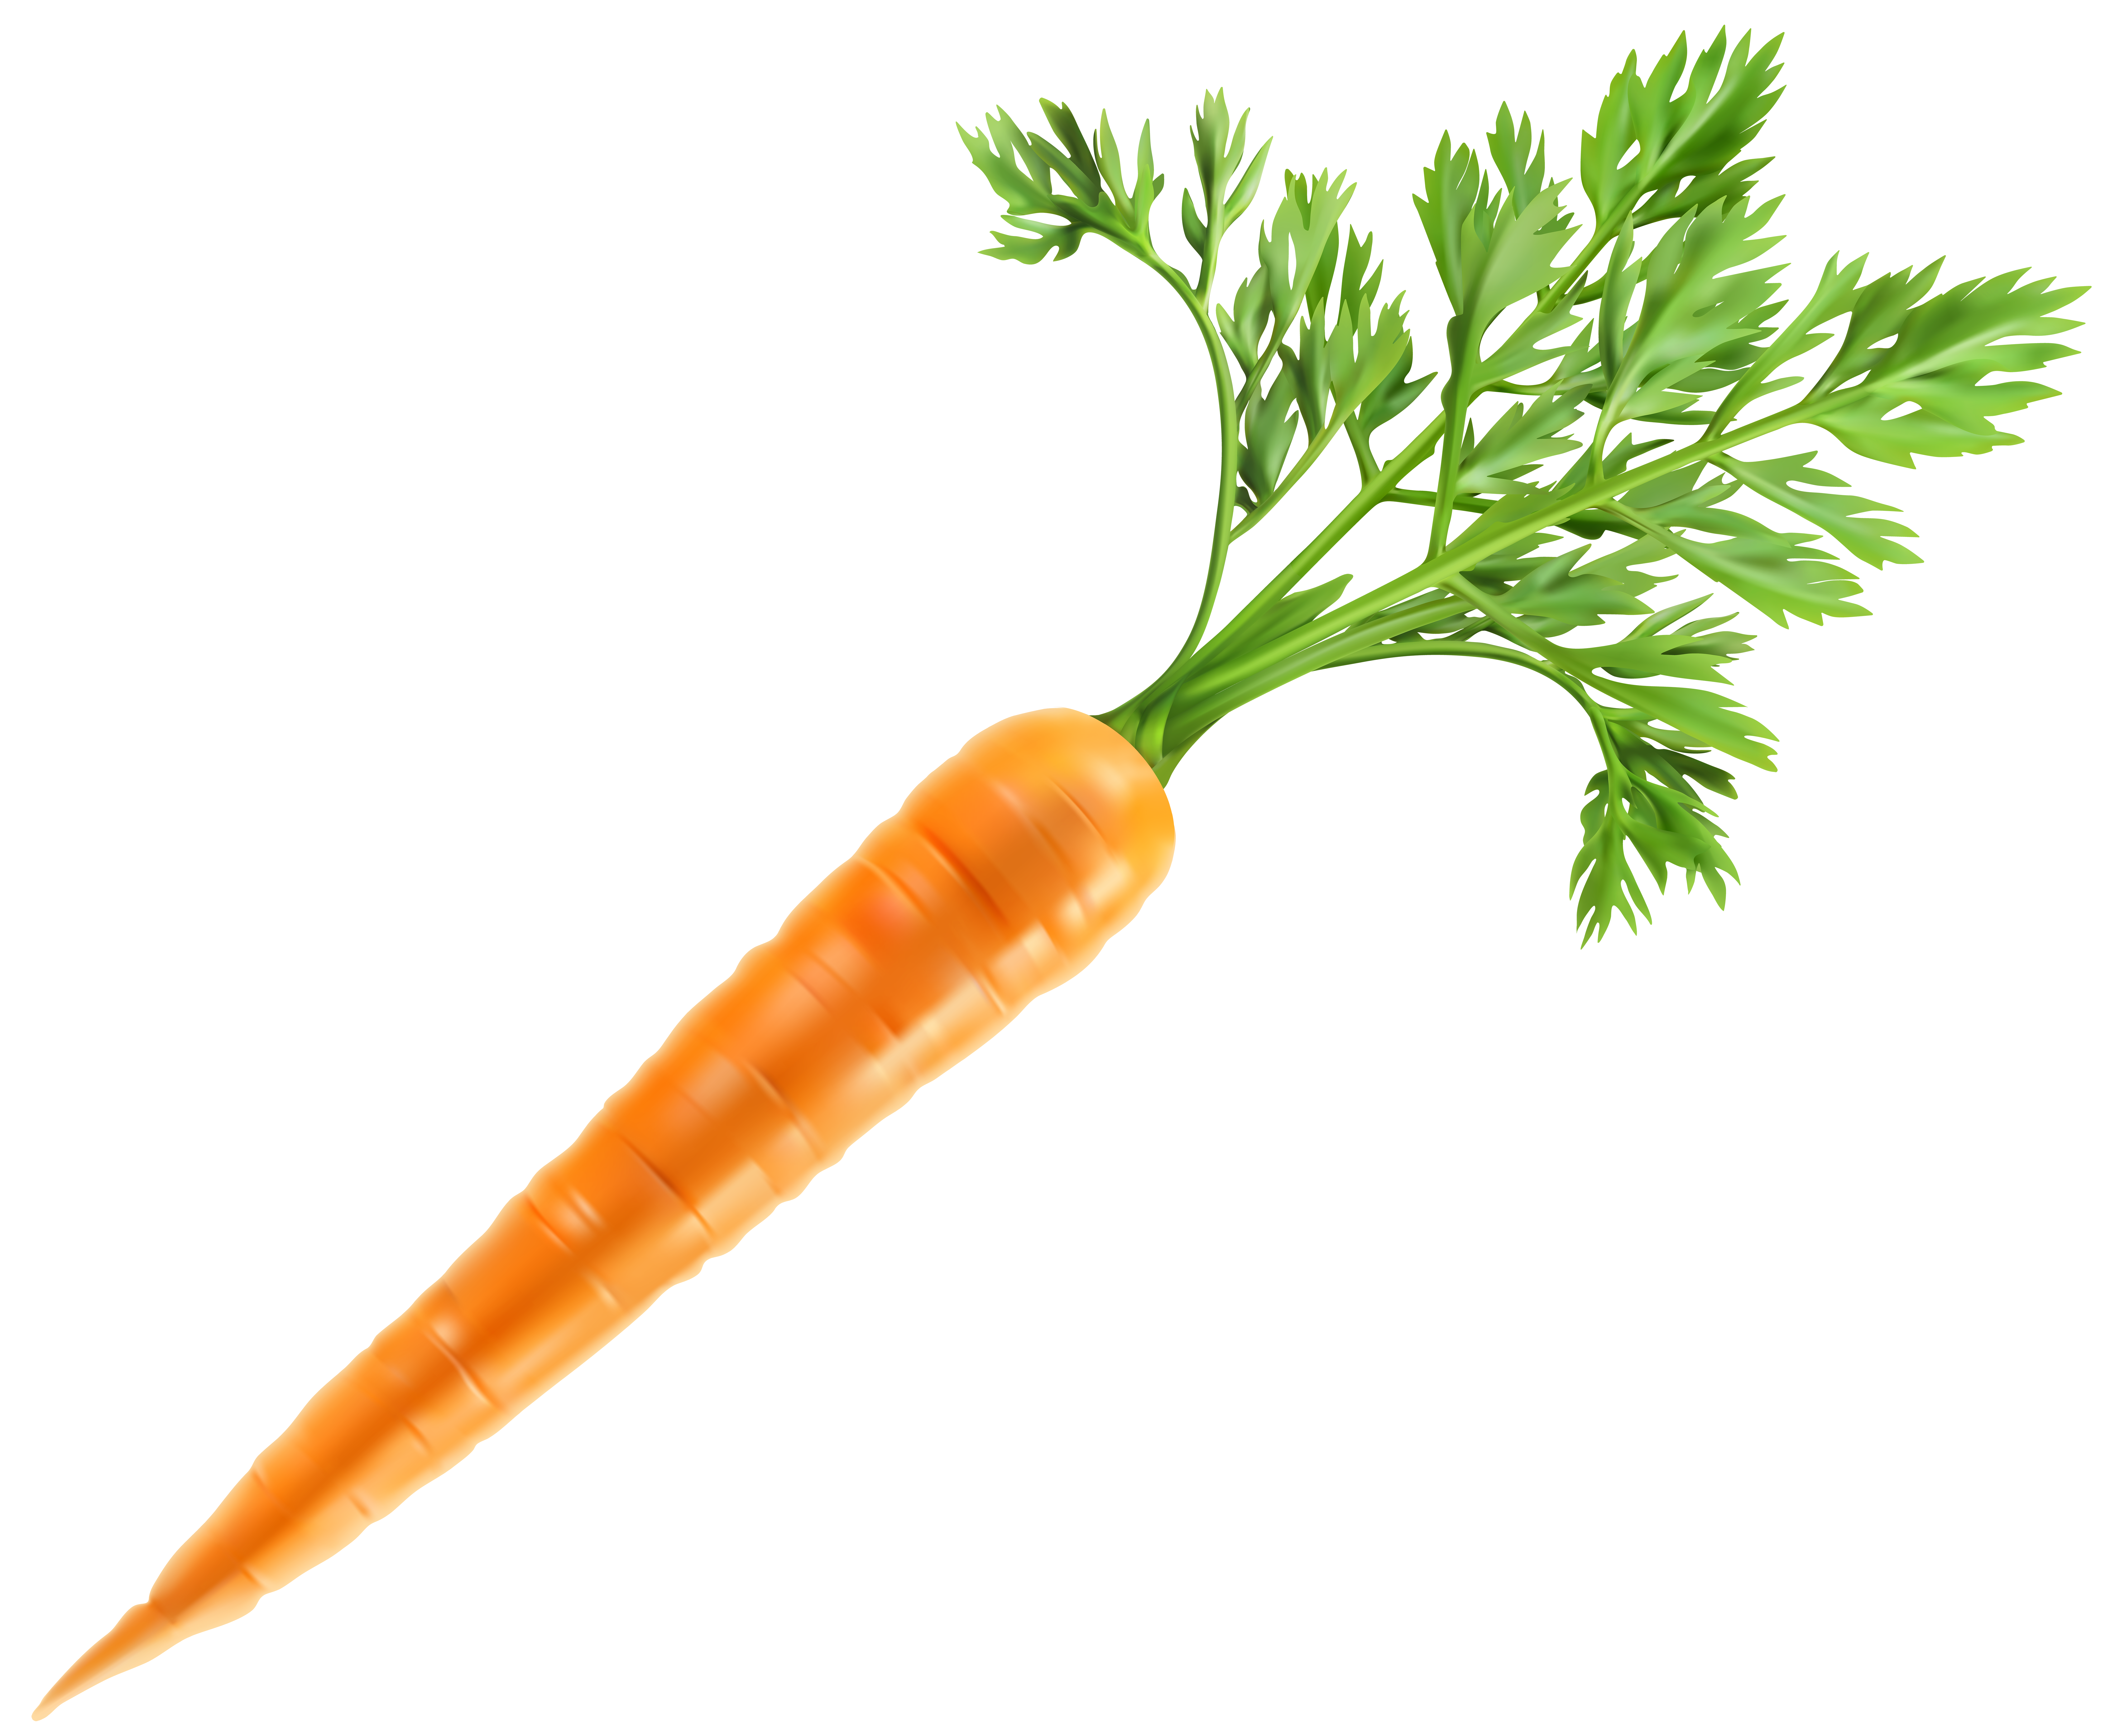 image free download Fresh Carrot PNG Clip Art Image